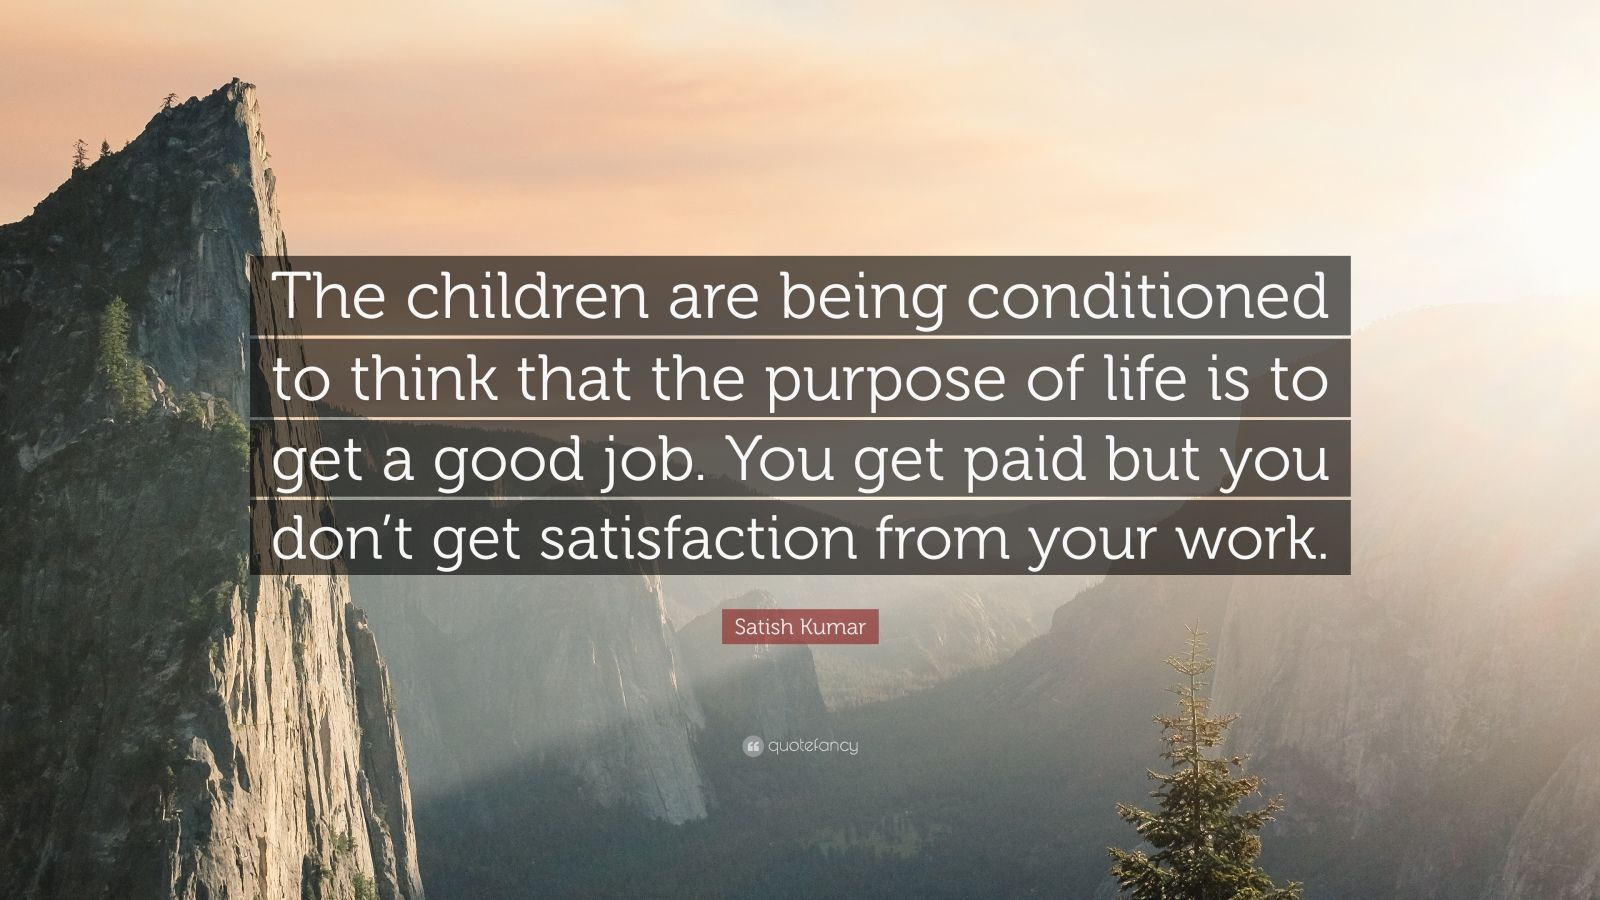 """Satish Kumar Quote: """"The children are being conditioned to think that the purpose of life is to get a good job. You get paid but you don't get satisfaction from your work."""""""